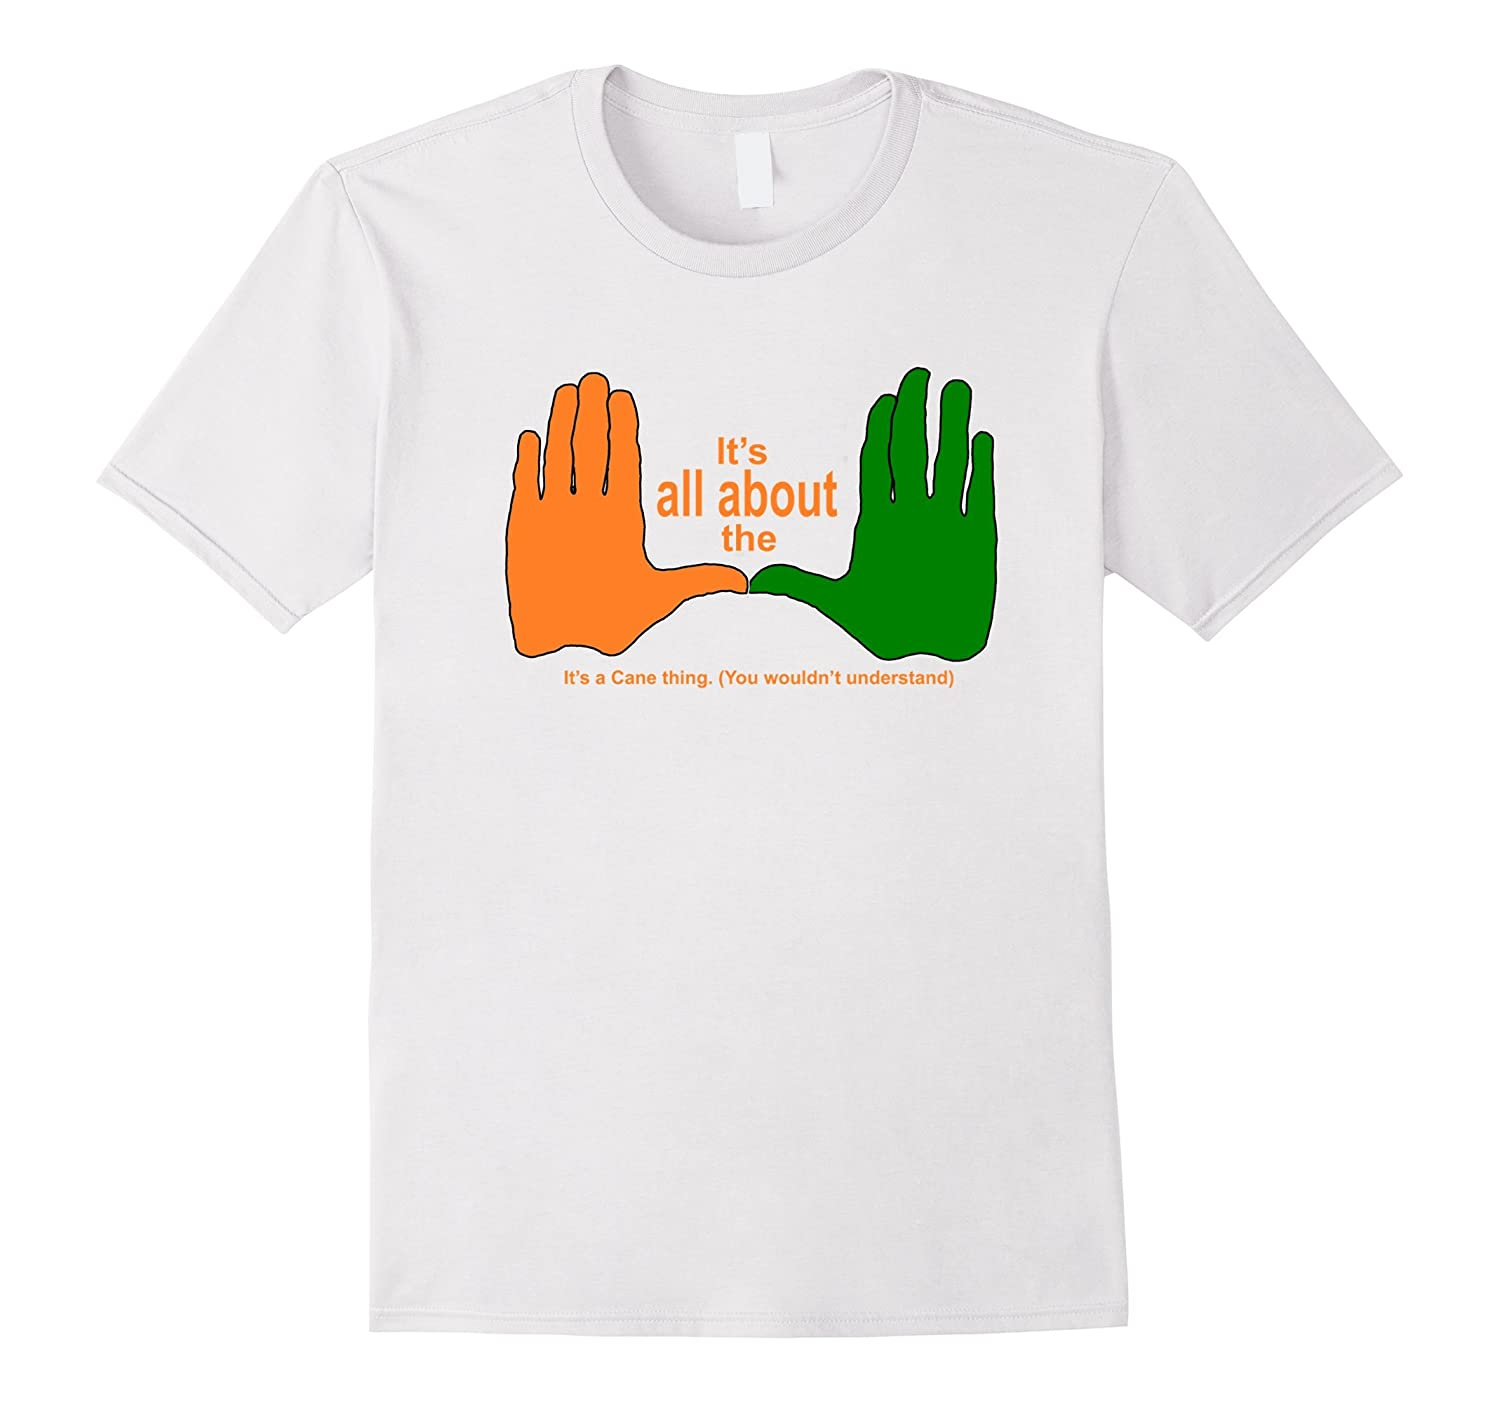 All About the U Graphic T-shirt A Cane Thing (B140)-CL